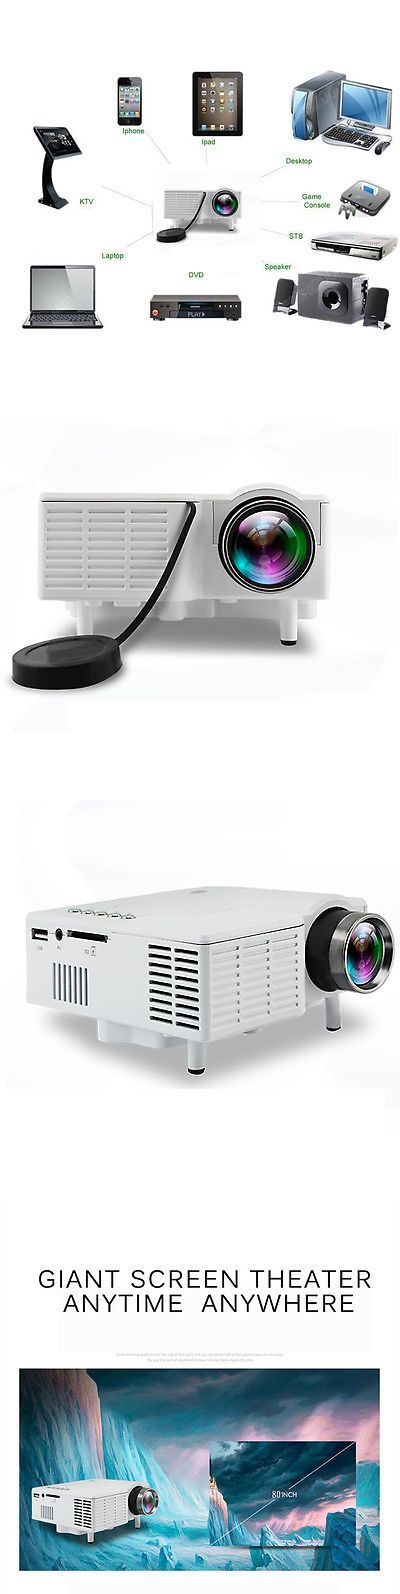 Home Theater Projectors: Uc28 Mini Portable Home Theater Cinema Proyector Projector Pc Vga Usb Sd Av New -> BUY IT NOW ONLY: $35.5 on eBay!